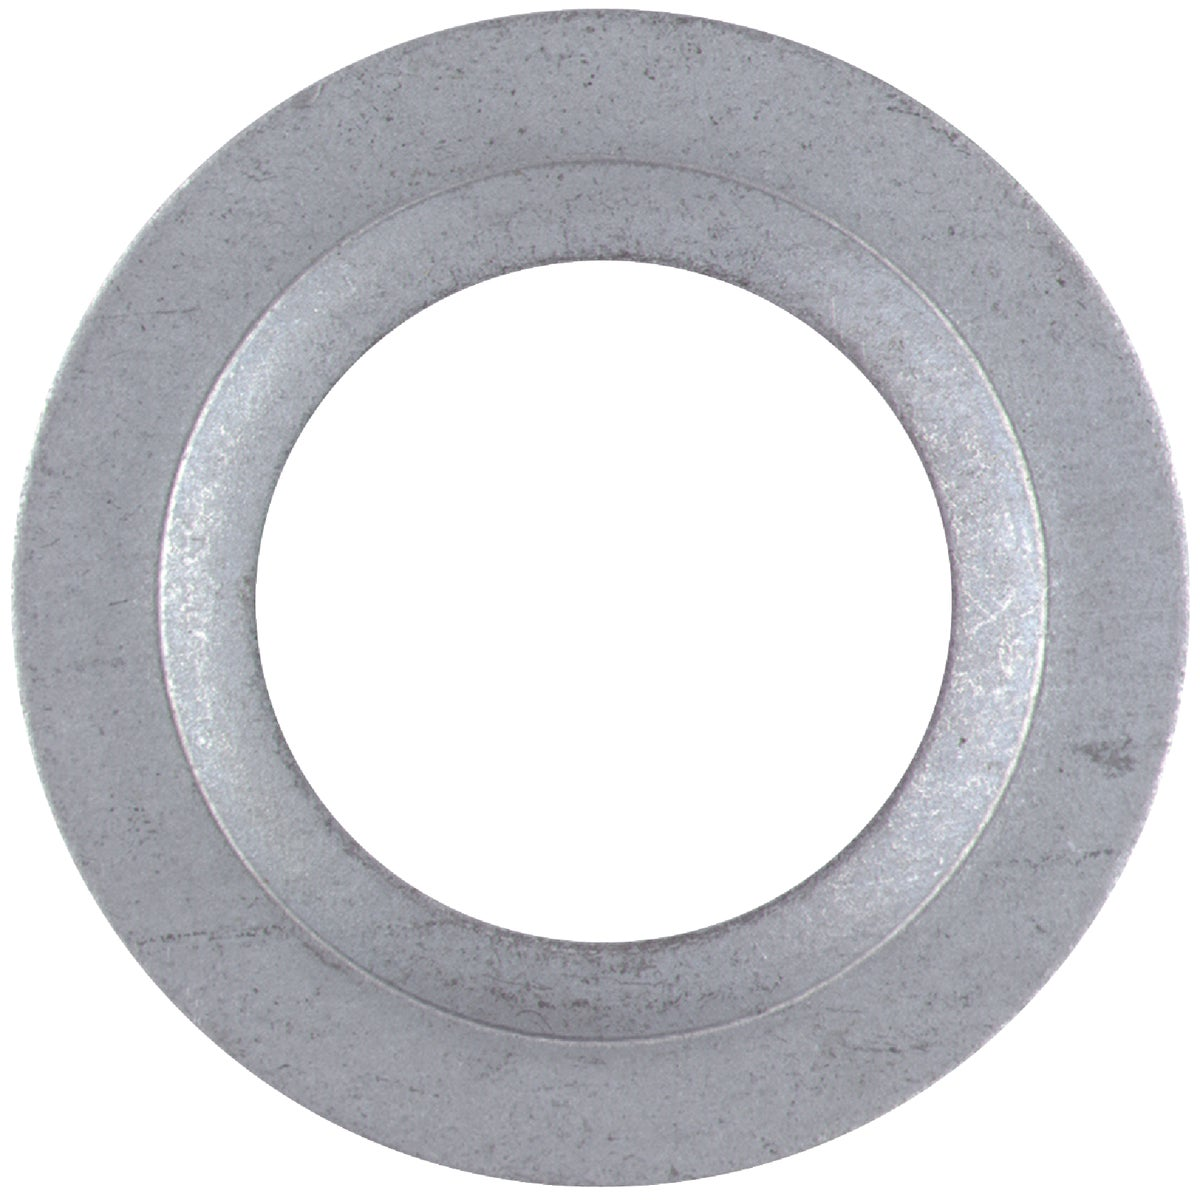 1-1/4X1 REDUCE WASHER - WA1432 by Thomas & Betts